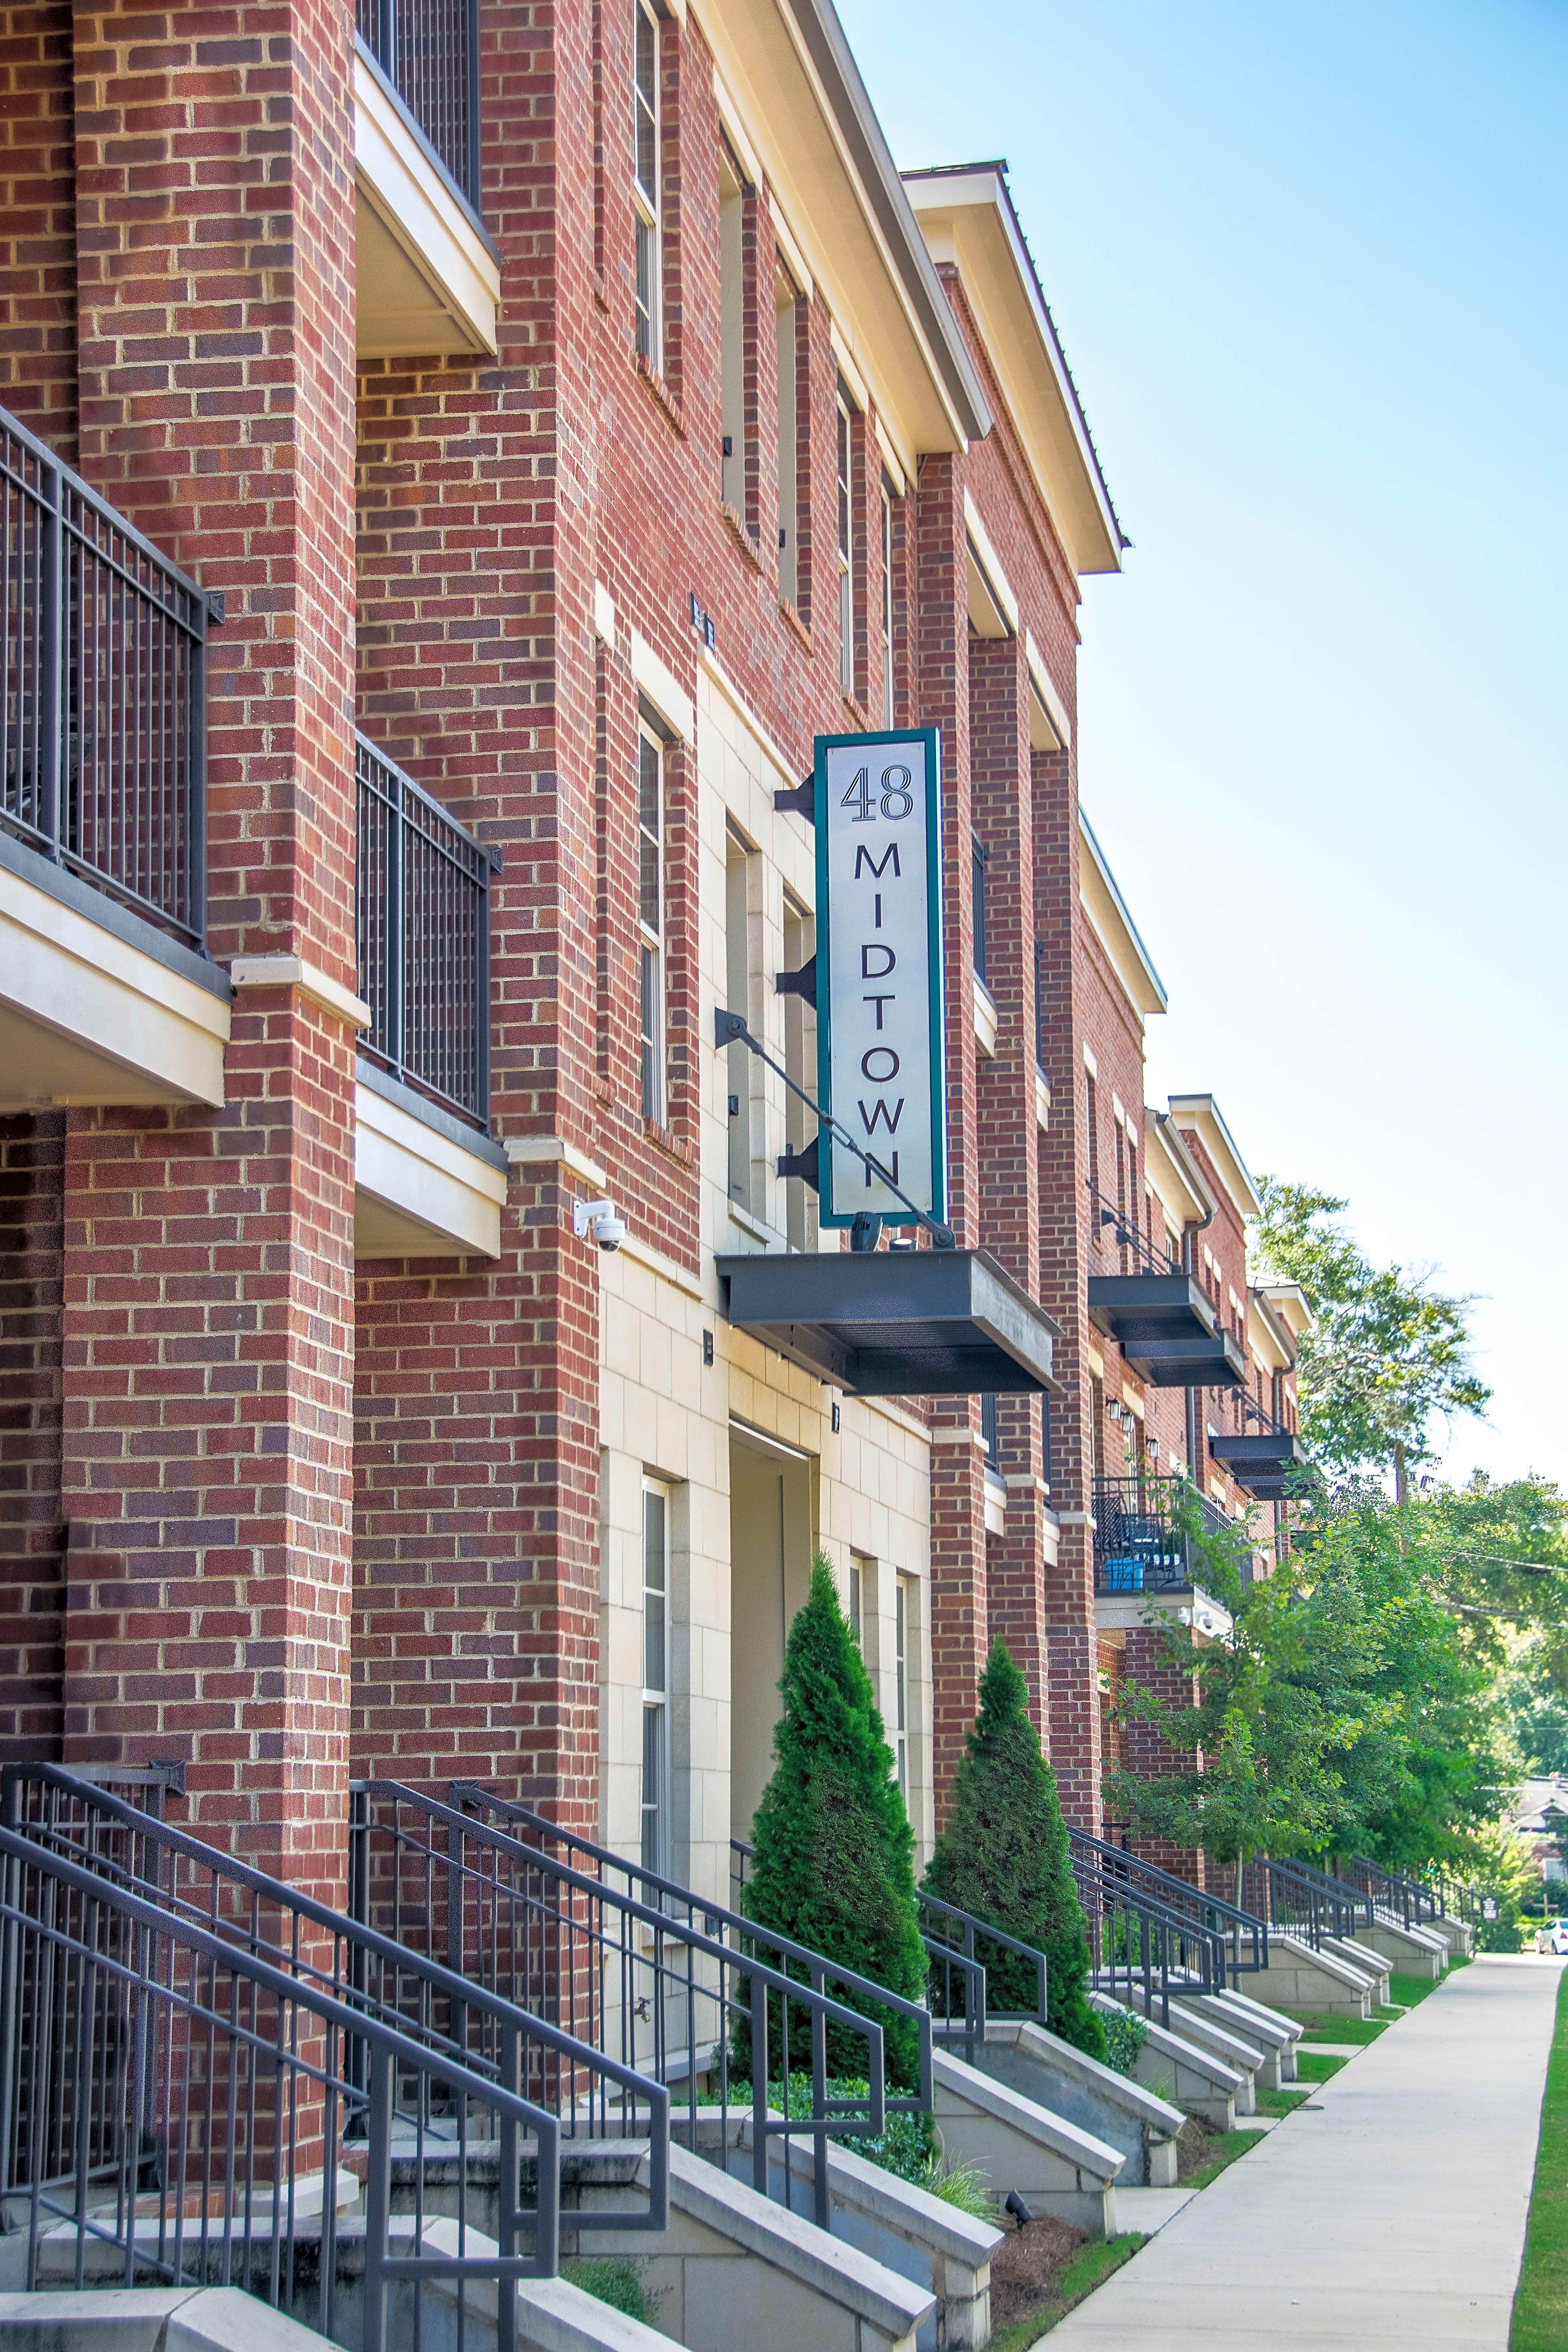 Apartments Near Faulkner 48 Midtown for Faulkner University Students in Montgomery, AL